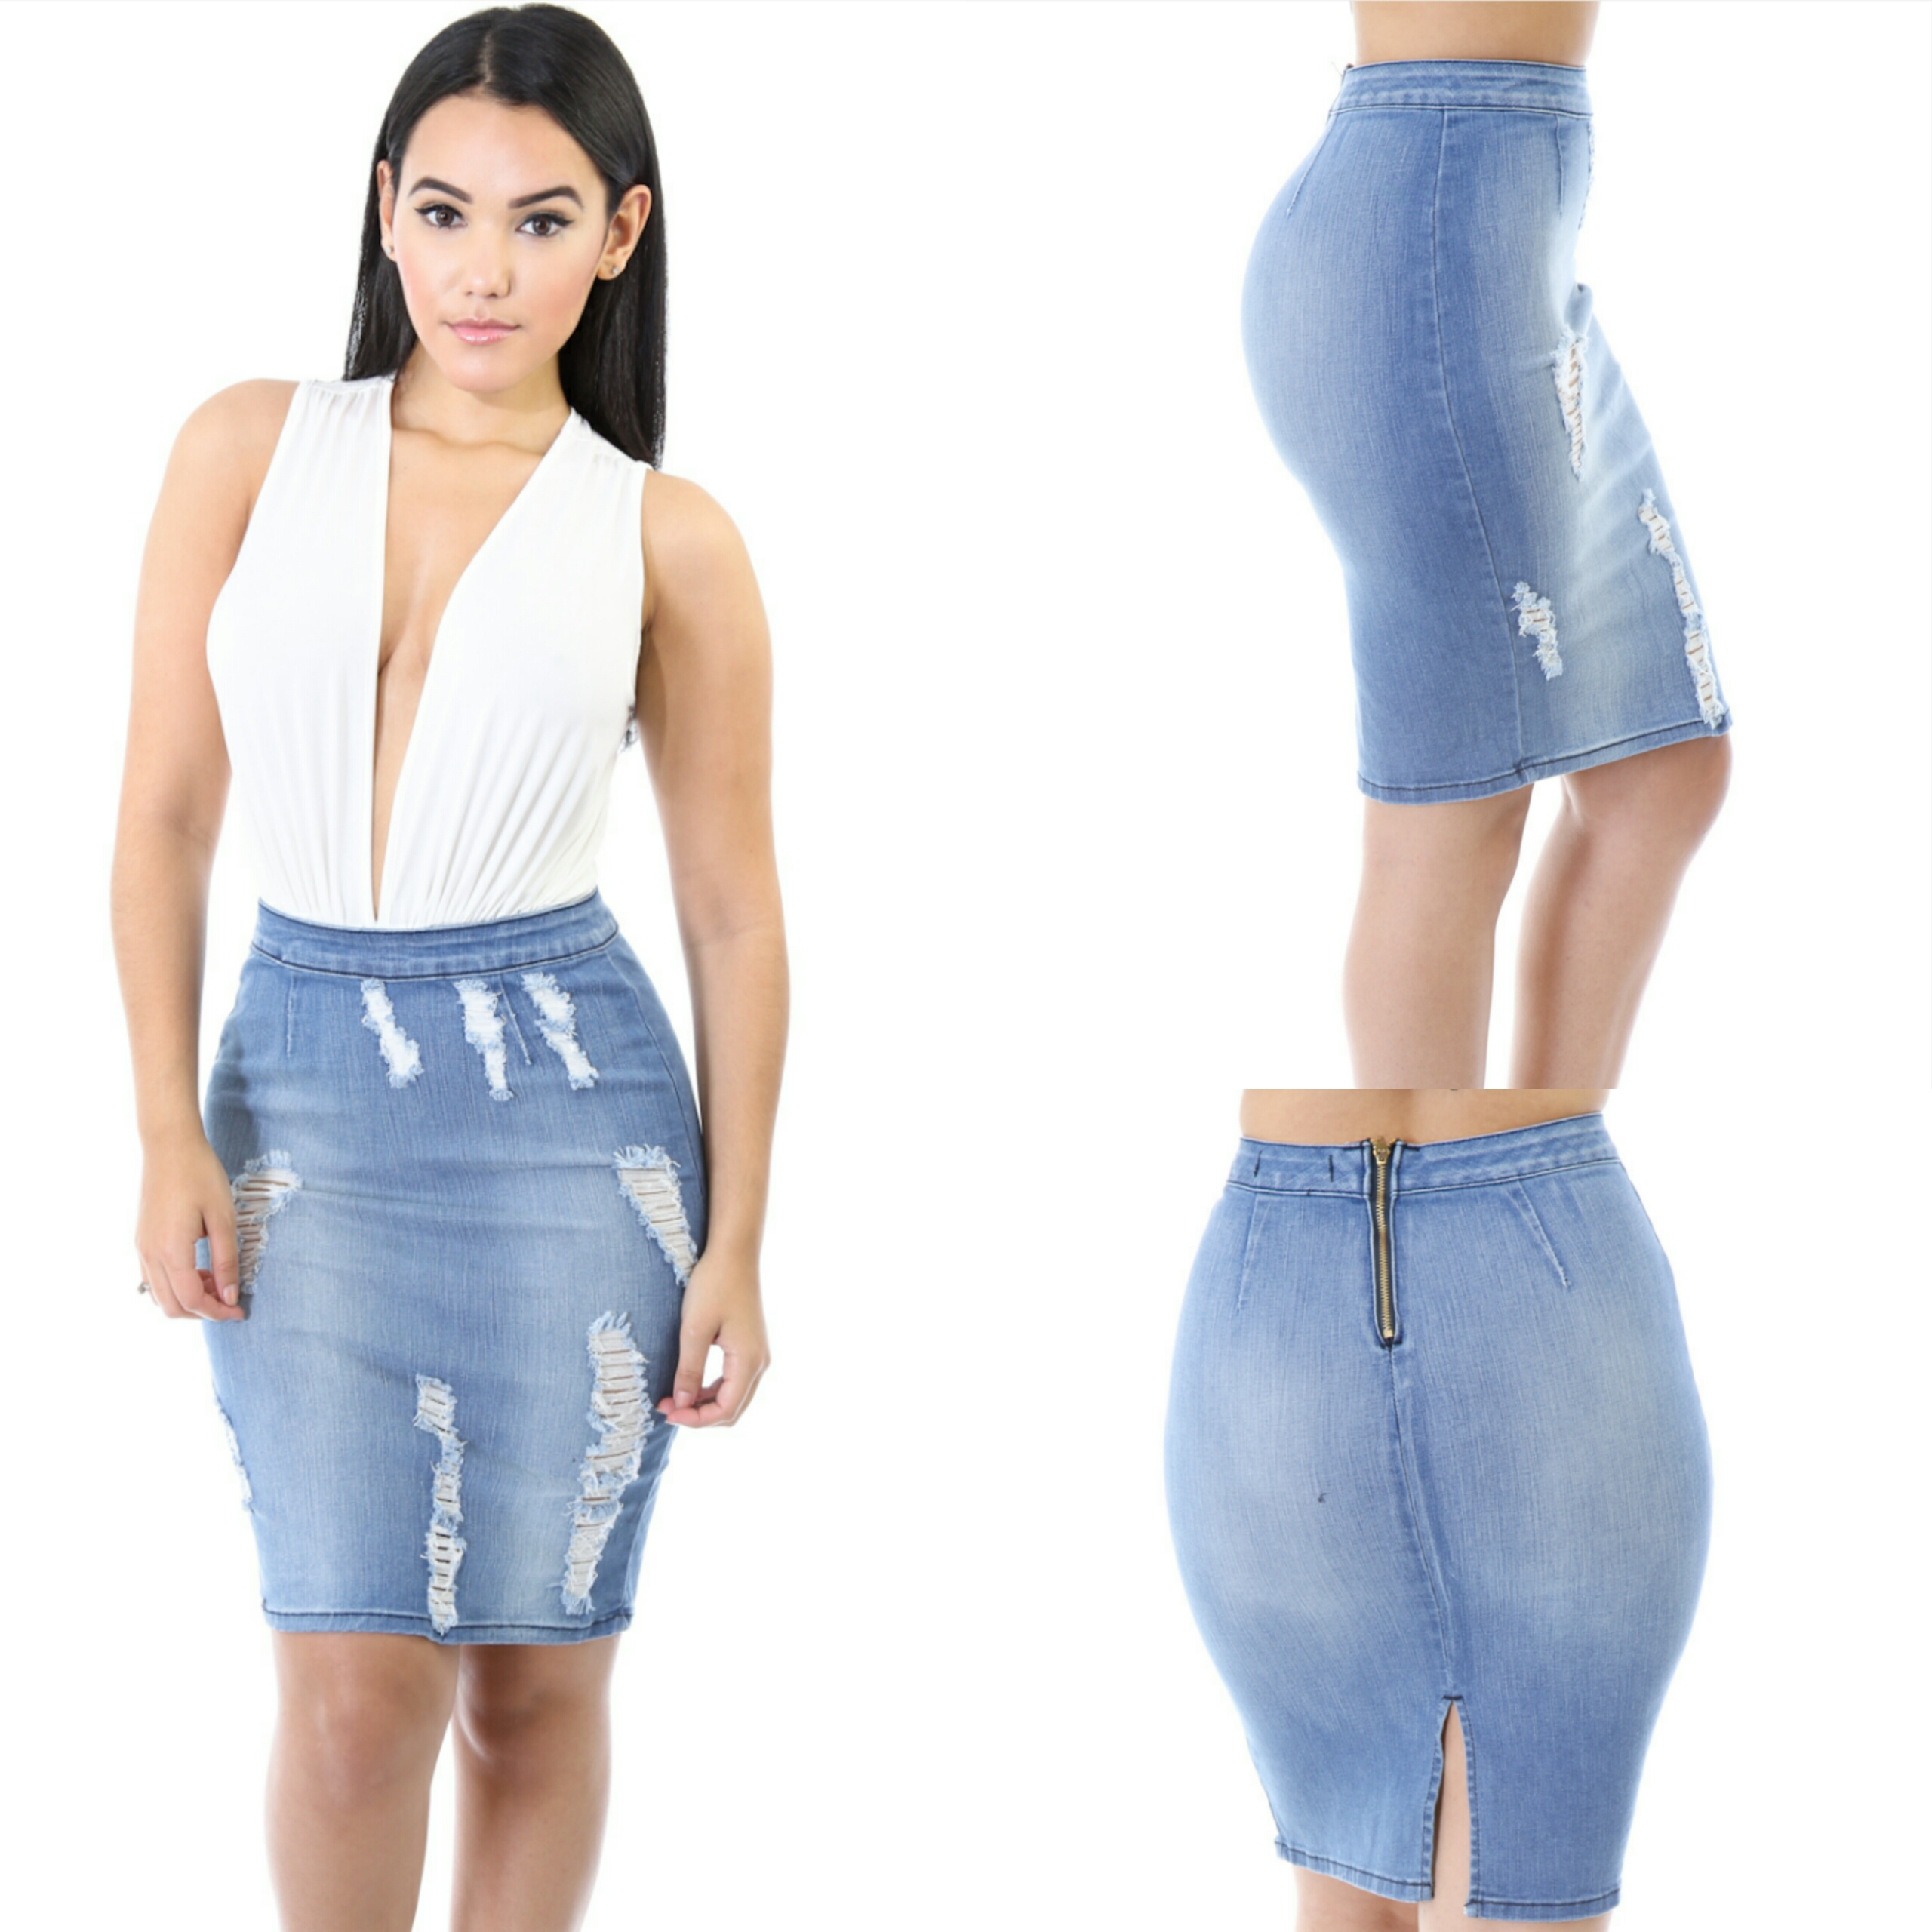 Ripped Denim Skirt · Simply Chic Style · Online Store Powered by